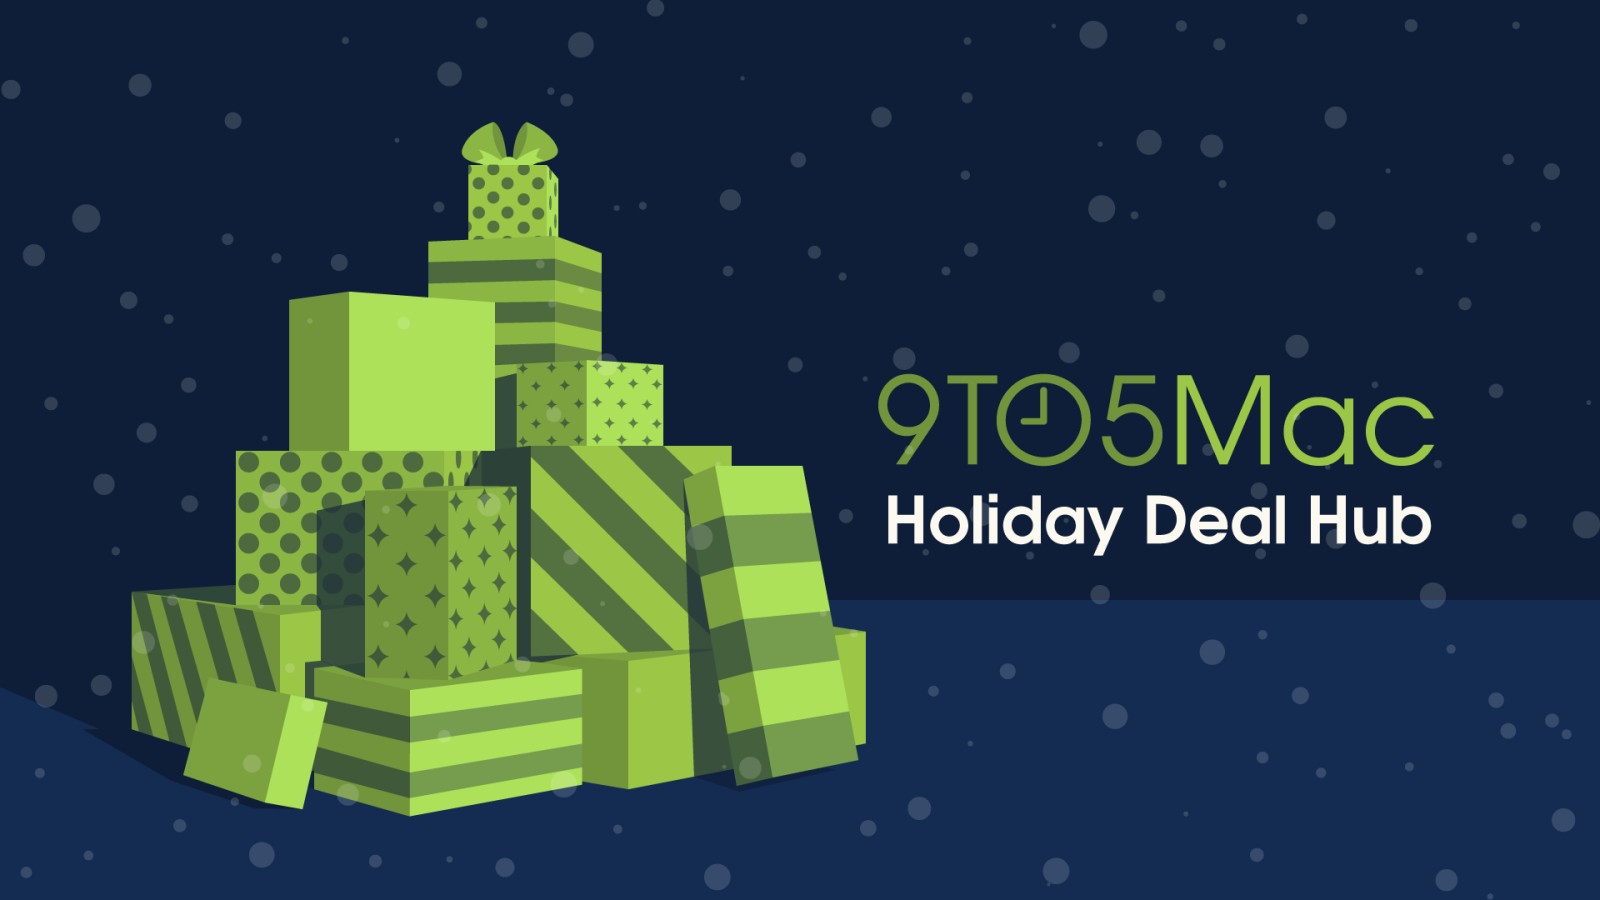 Holiday Deal Hub: Exclusive deals for 9to5Mac readers!